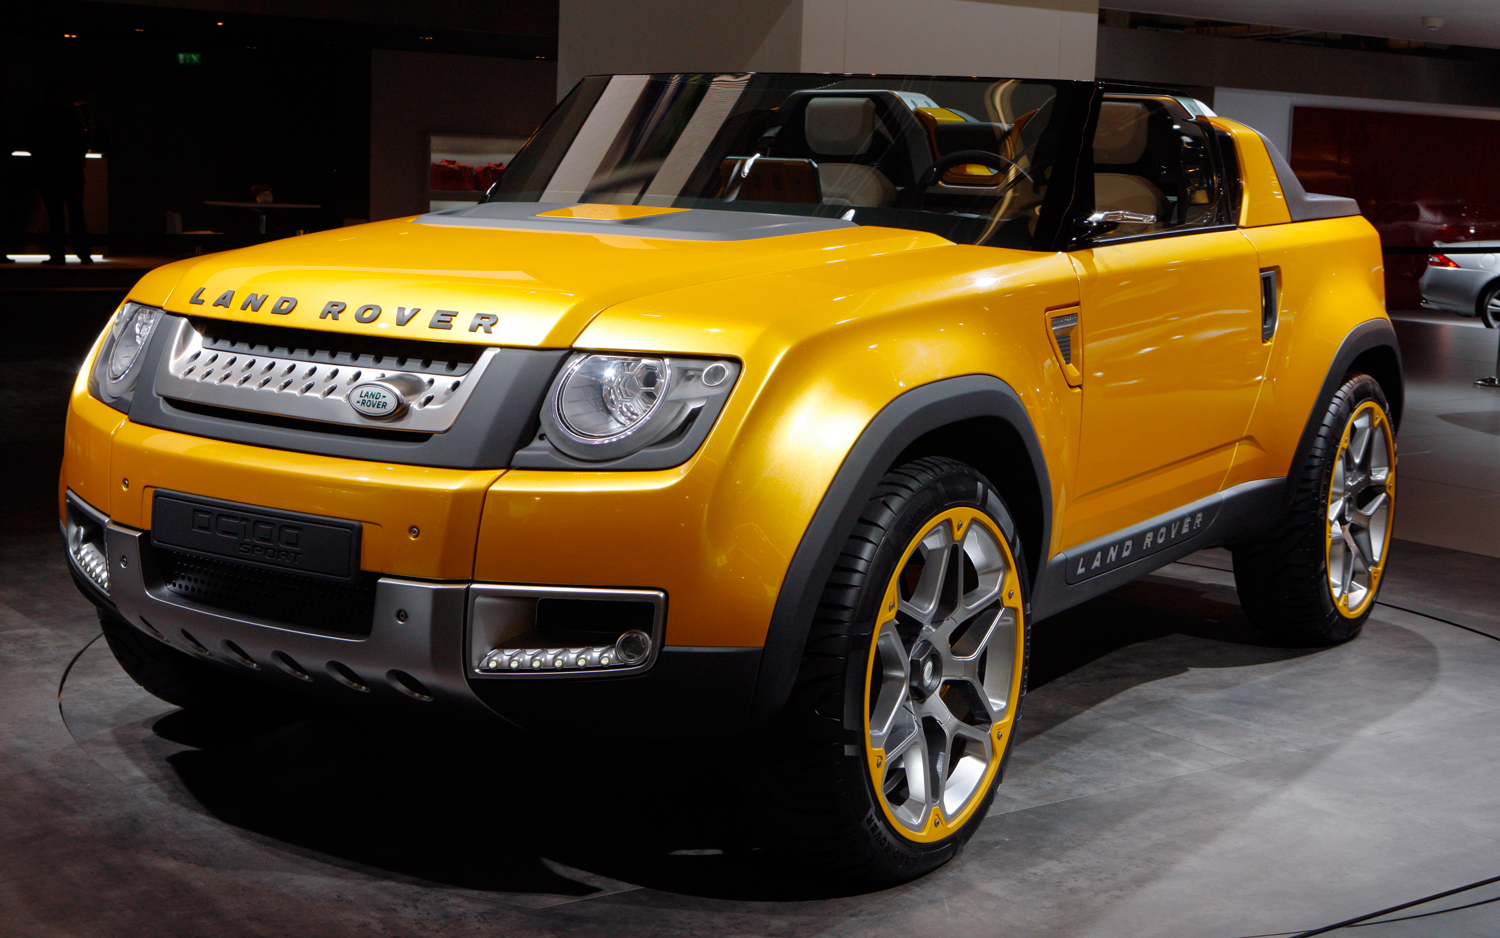 Land rover concept photo - 2